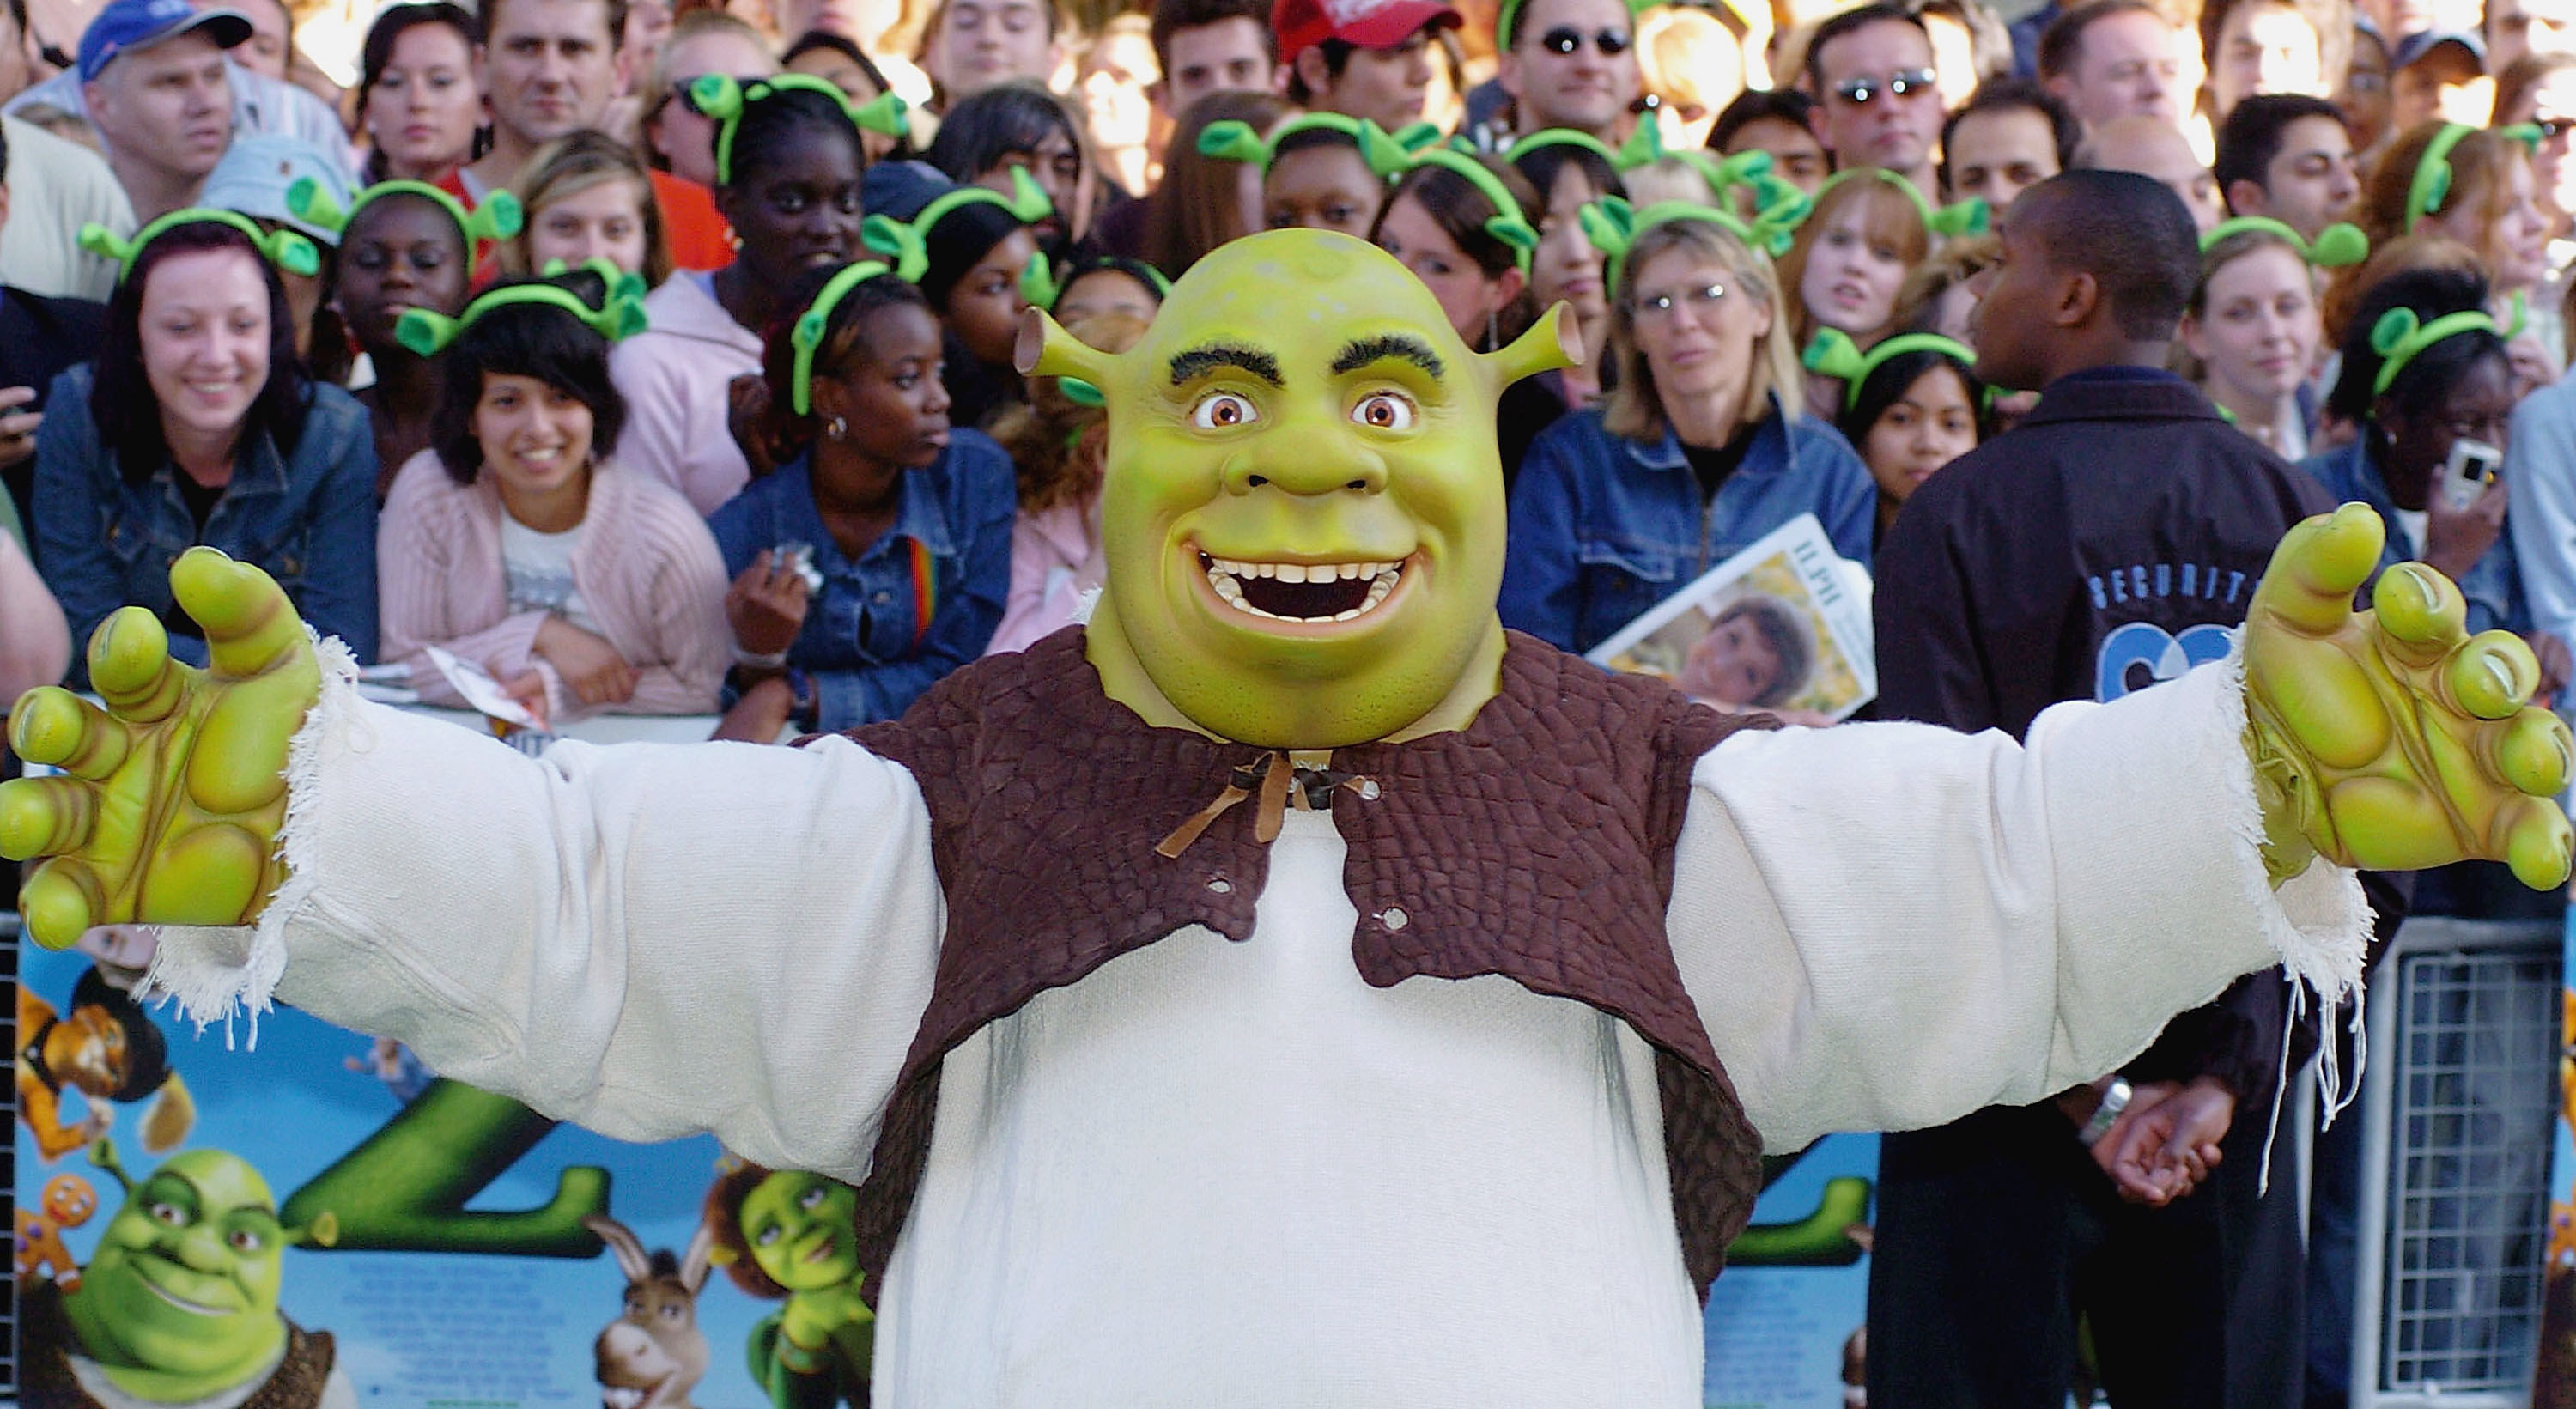 Someone in a Shrek costume holds their arms wide in front of a crowd of people wearing green headbands of ogre ears